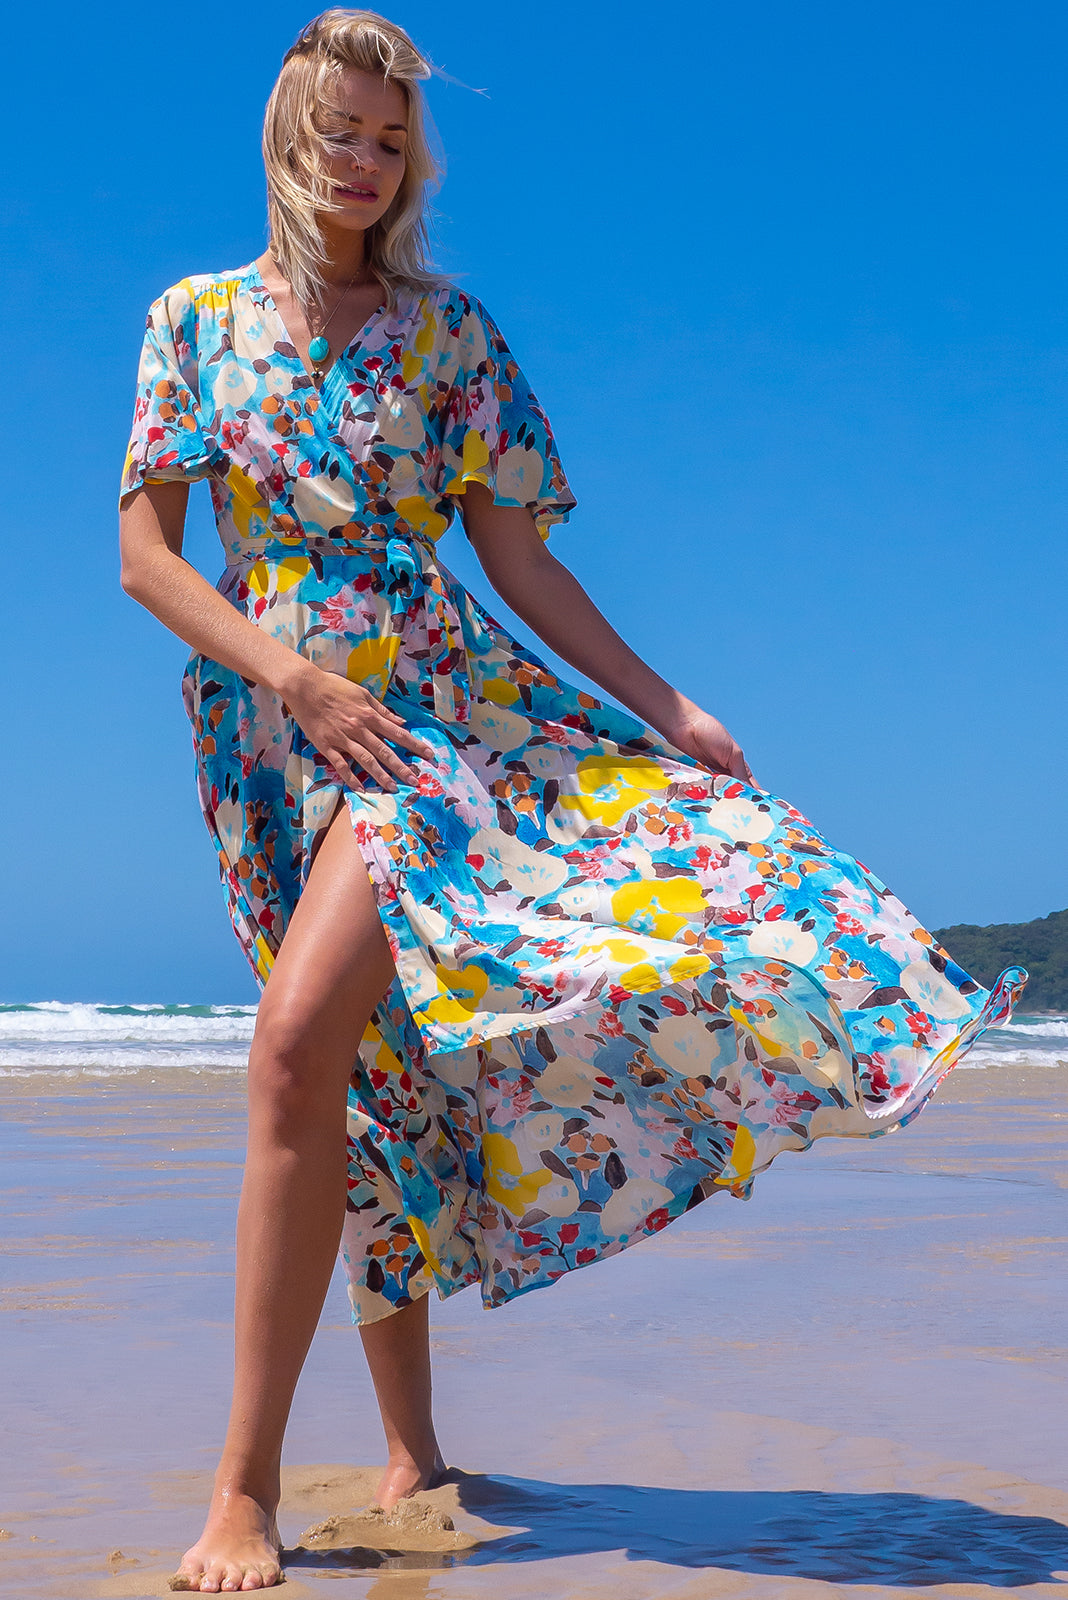 The Petal Watercolours Maxi Wrap Dress features plunging neckline, ties at waist, elasticised waistband at back, floaty petal sleeves, deep side pockets and 100% rayon in watercolour print in blues and yellows.